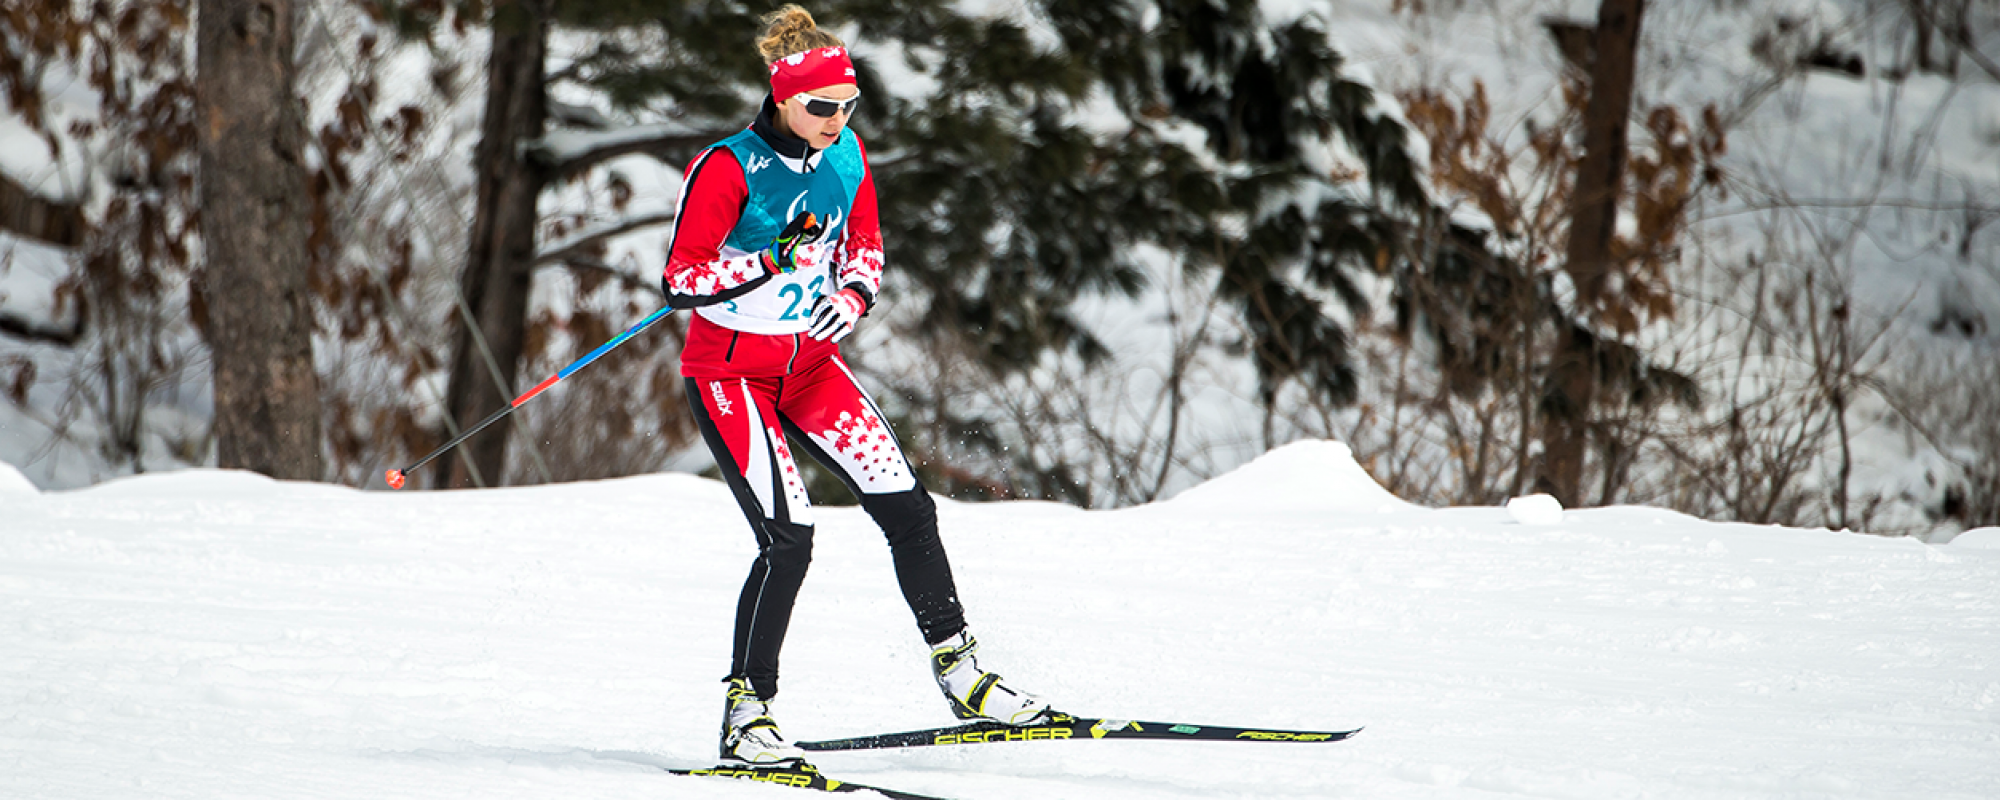 Natalie Wilkie in the Para biathlon